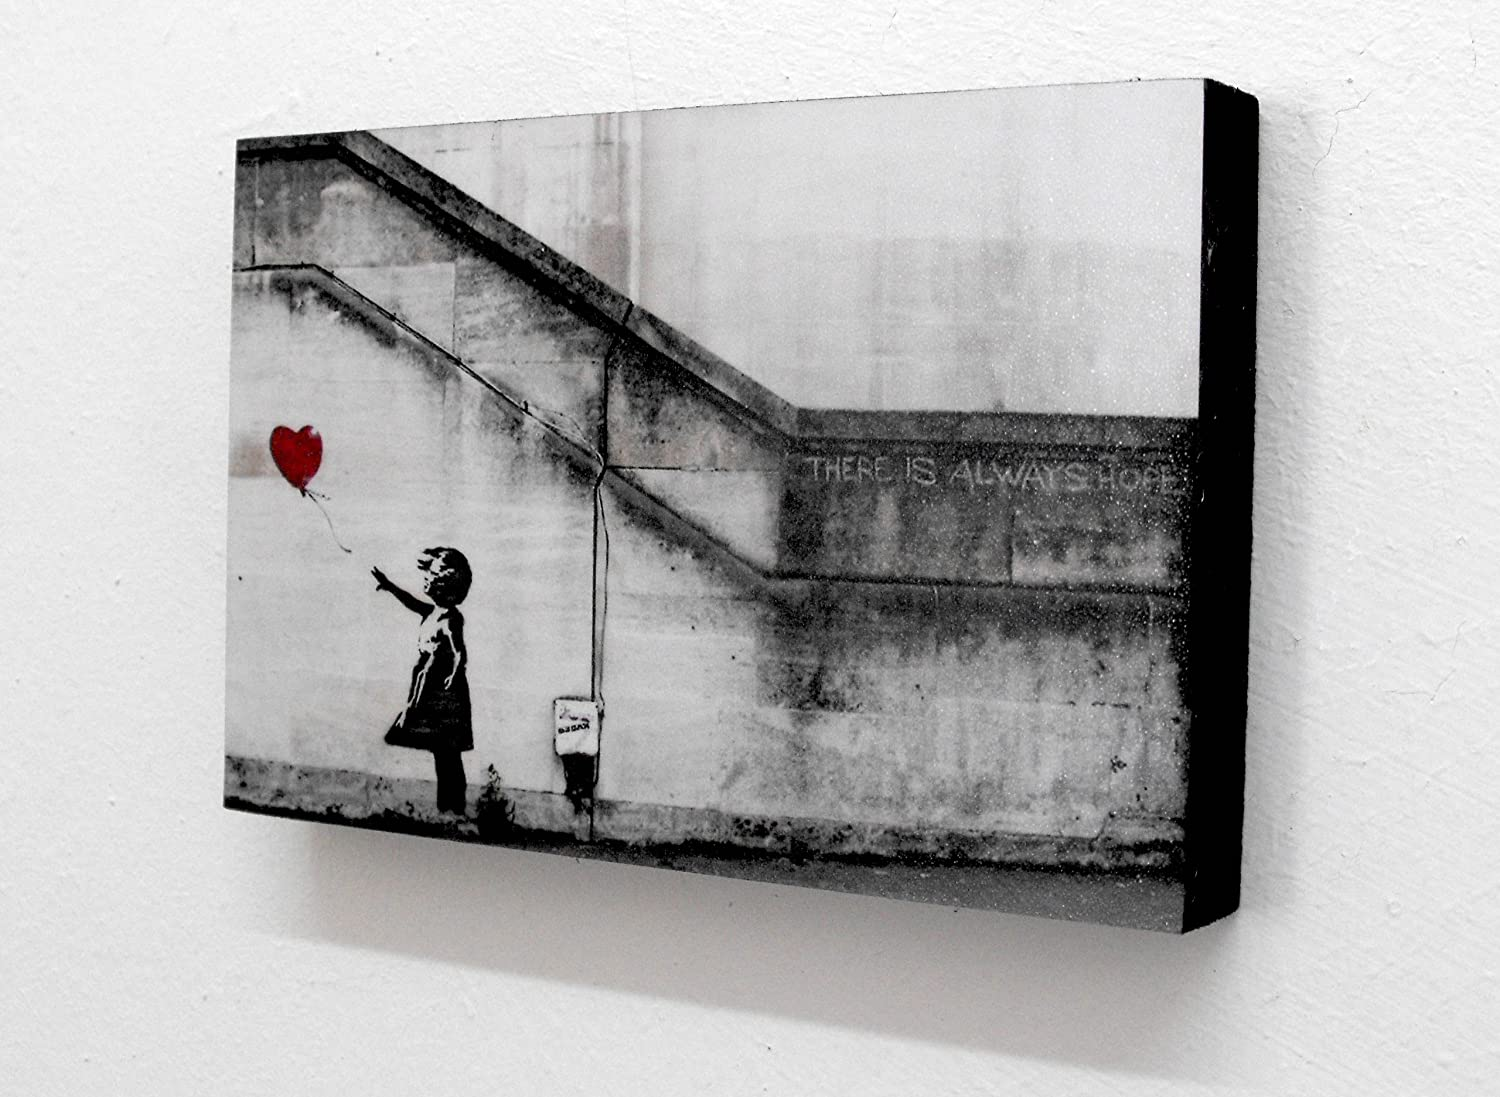 Banksy Balloon Girl There Is Always Hope 6